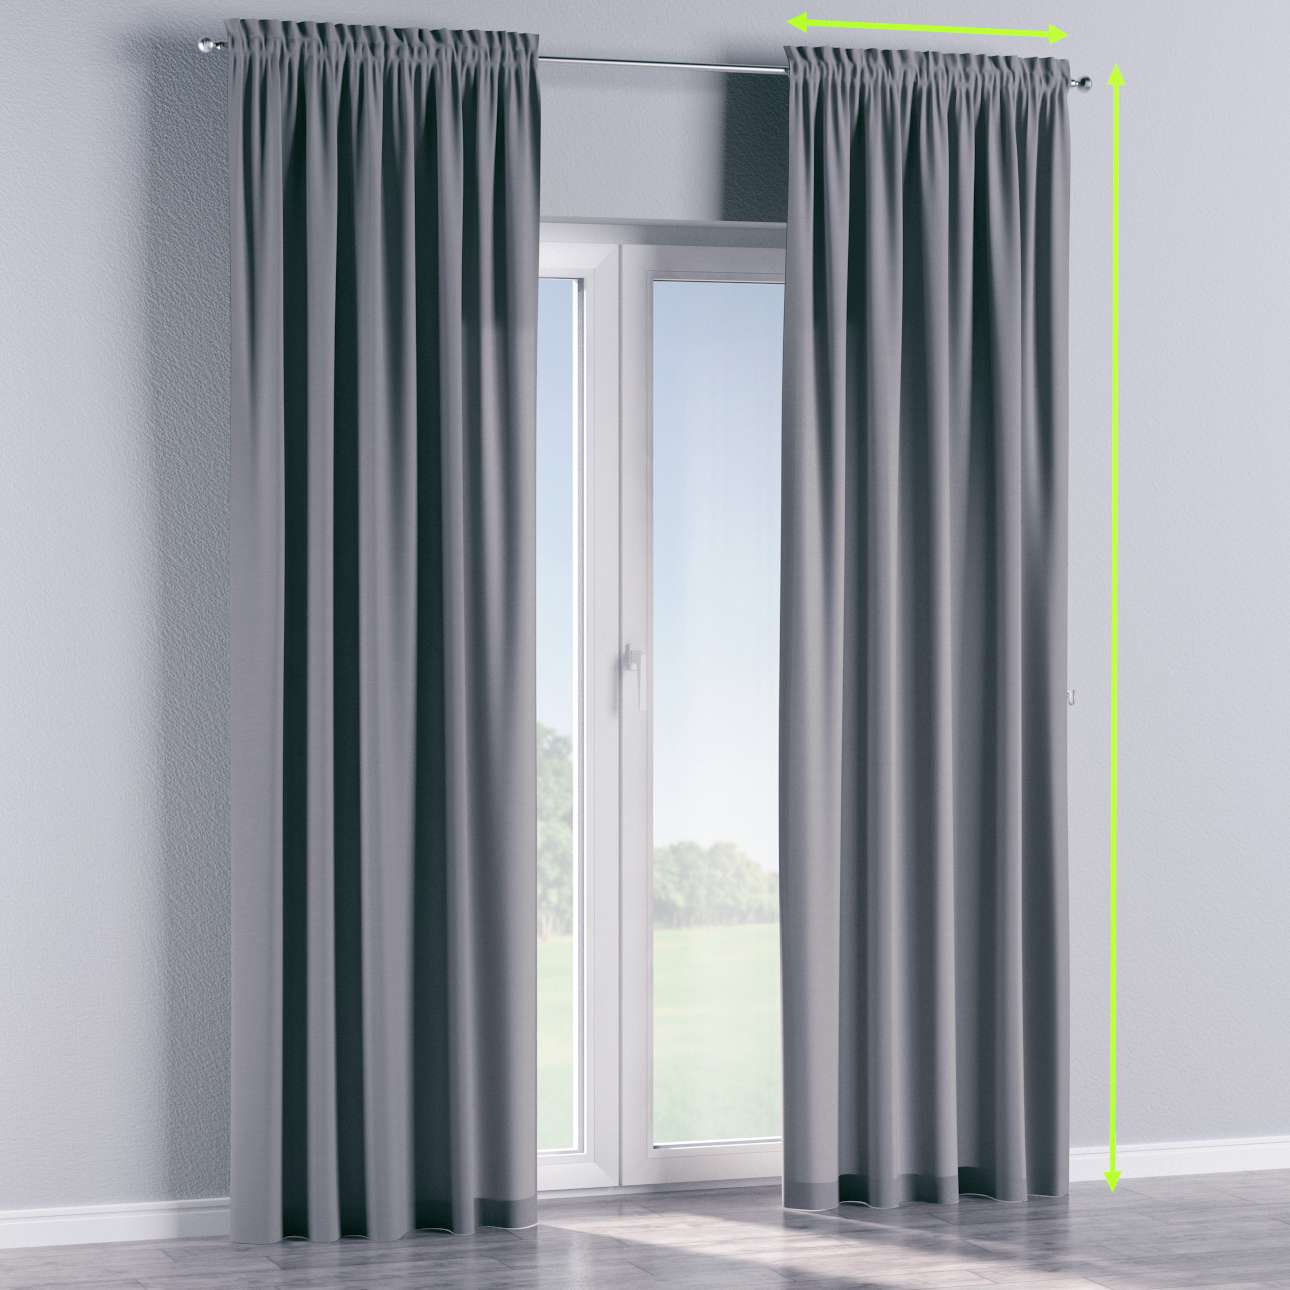 Slot and frill lined curtains in collection Cotton Panama, fabric: 702-07